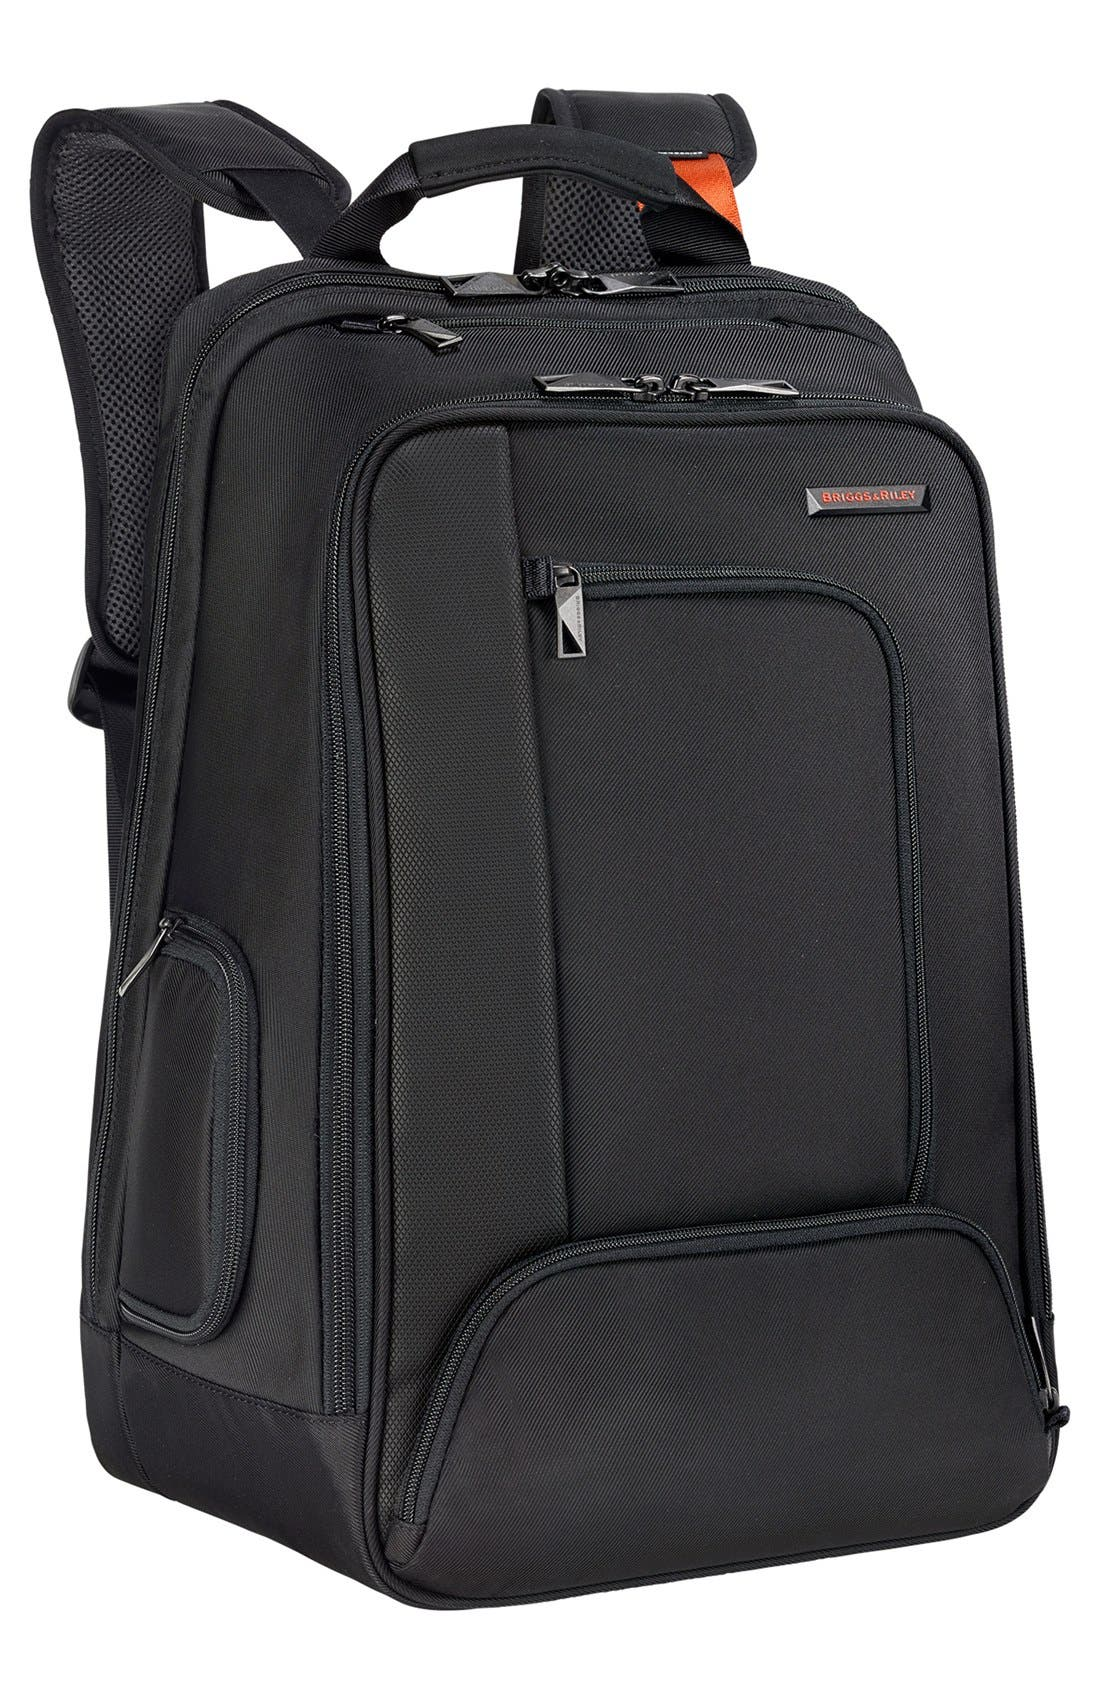 BRIGGS & RILEY 'Verb - Accelerate' Backpack, Main, color, BLACK